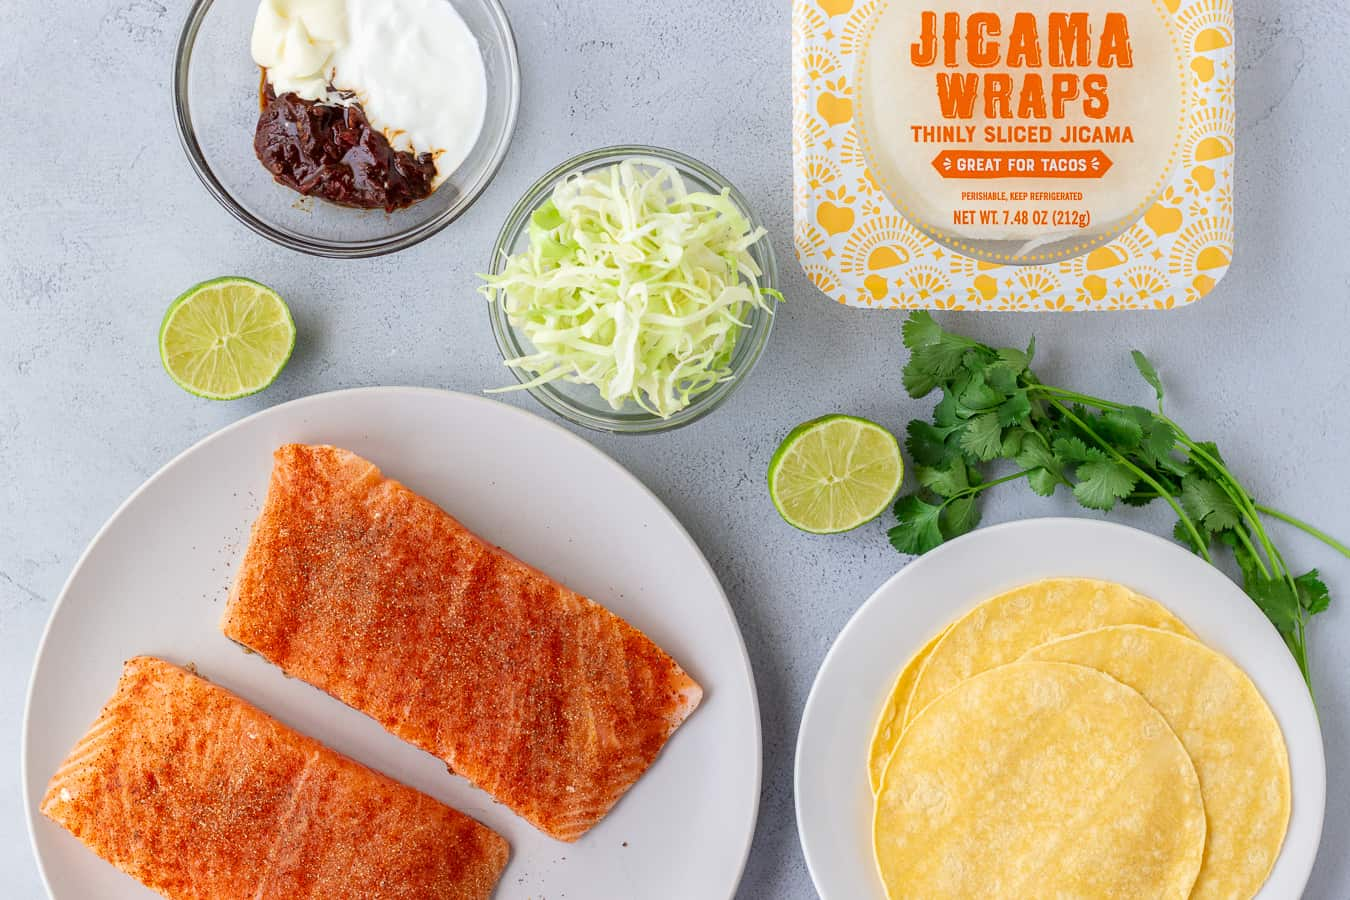 Overhead shot of ingredients, salmon fillets, shredded cabbage, corn tortillas, jicama wraps, and chipotle sauce.